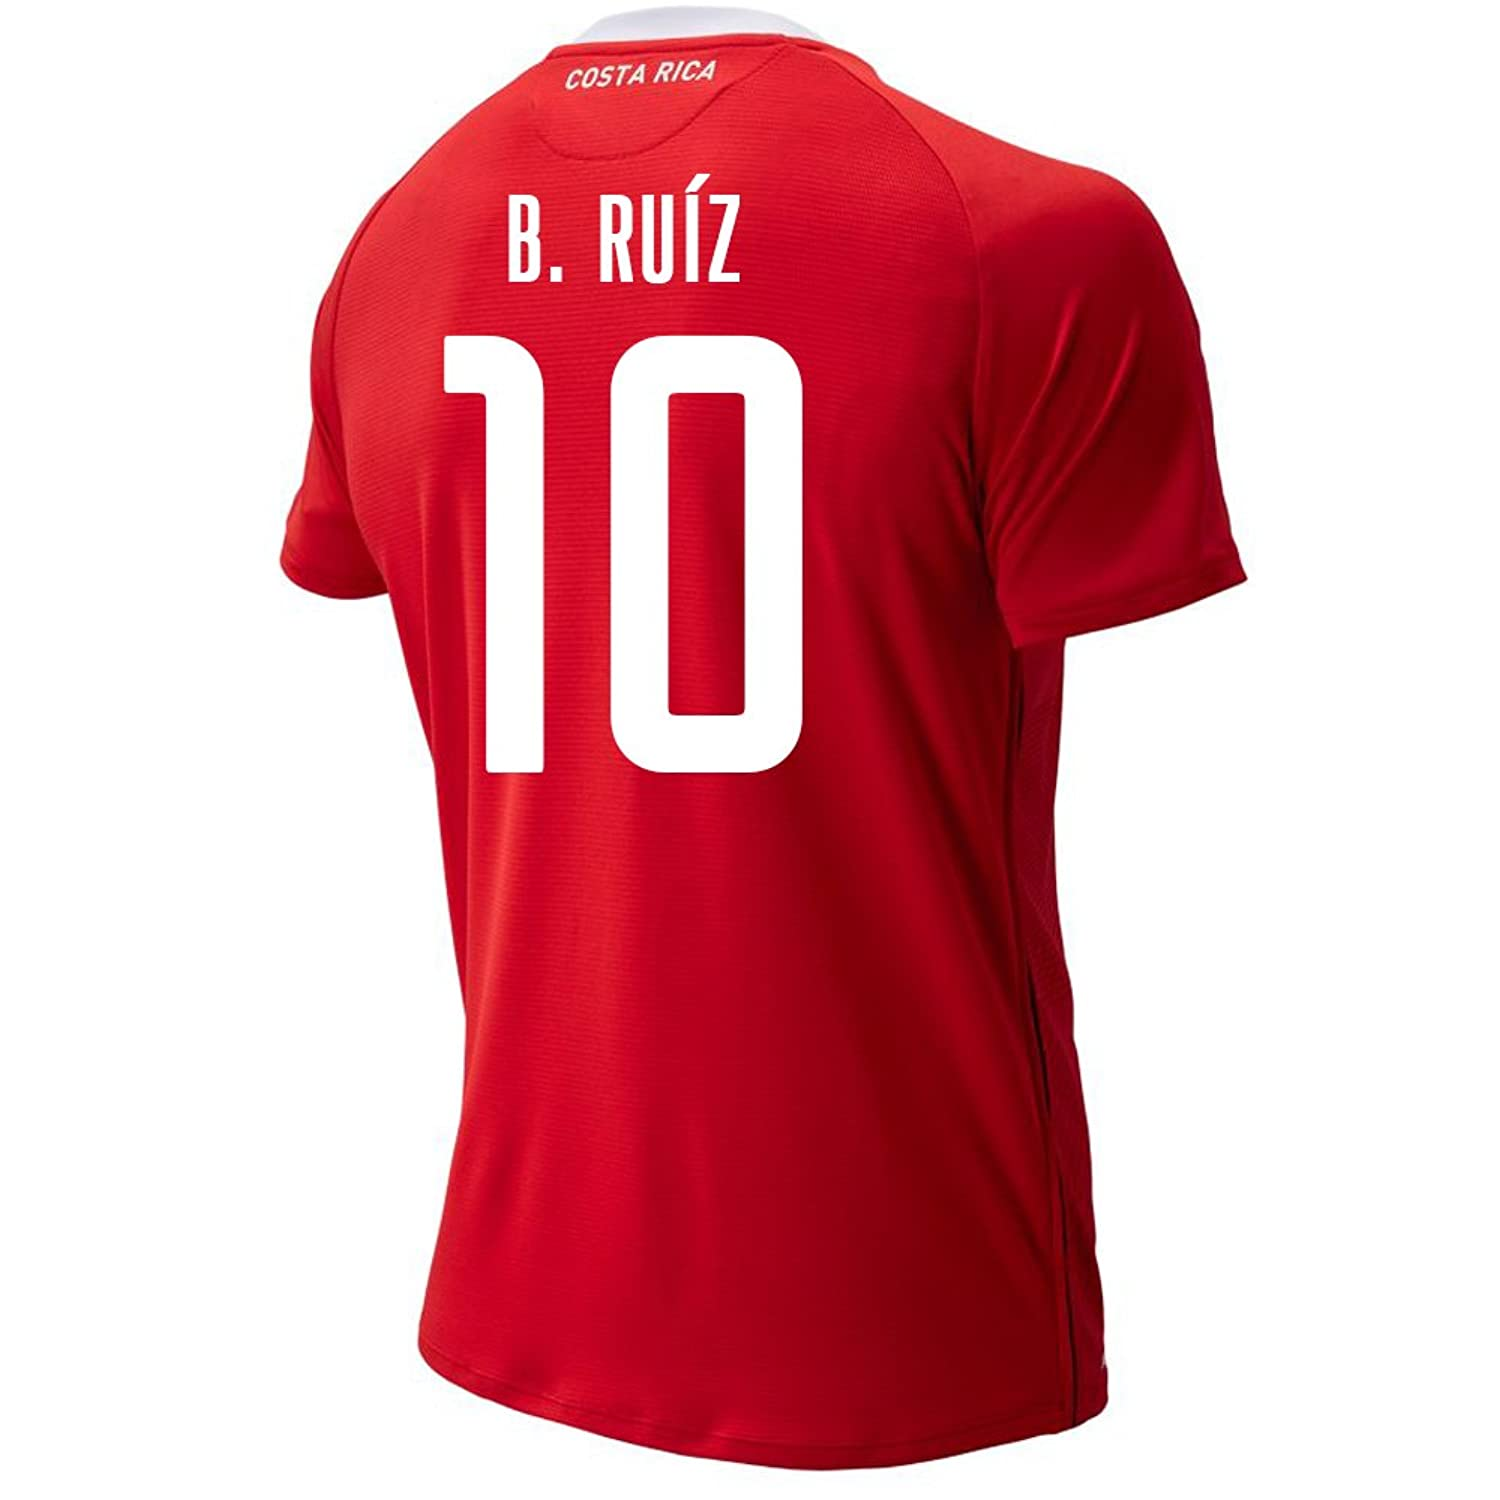 New Balance Men's B. Ruiz #10 Costa Rica Home Soccer Jersey FIFA World Cup Russia 2018/サッカーユニフォーム コスタリカ ホーム用 ルイス #10 B07CZ43JCV US 2X-Large